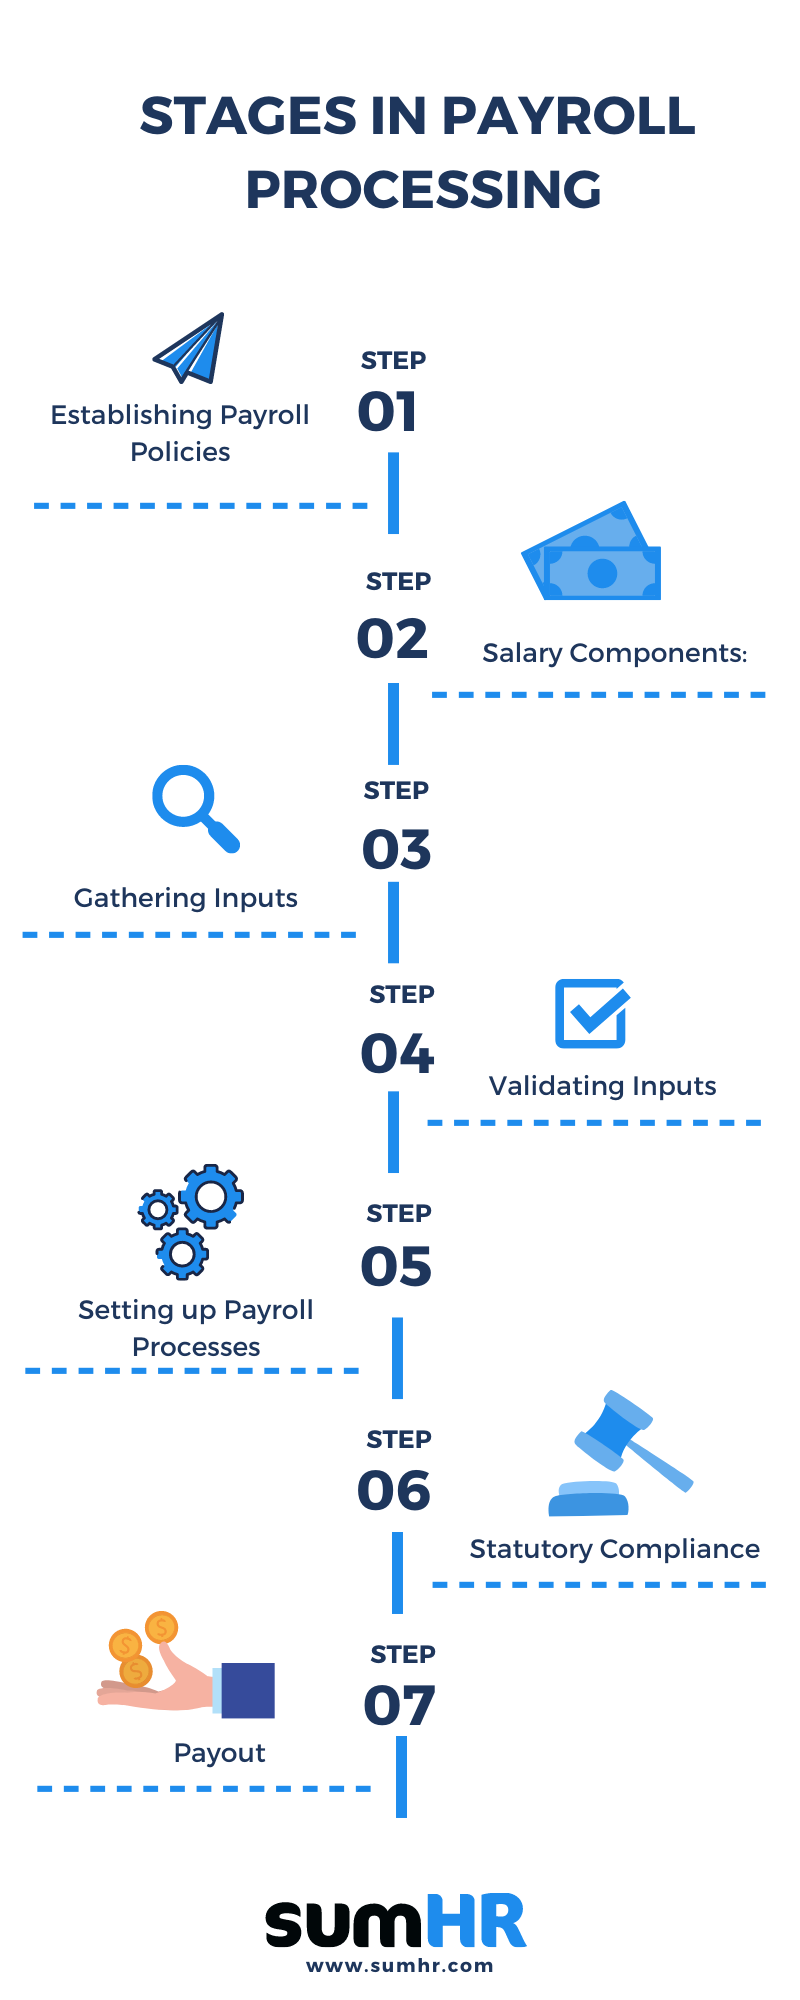 Stages in Payroll Processing